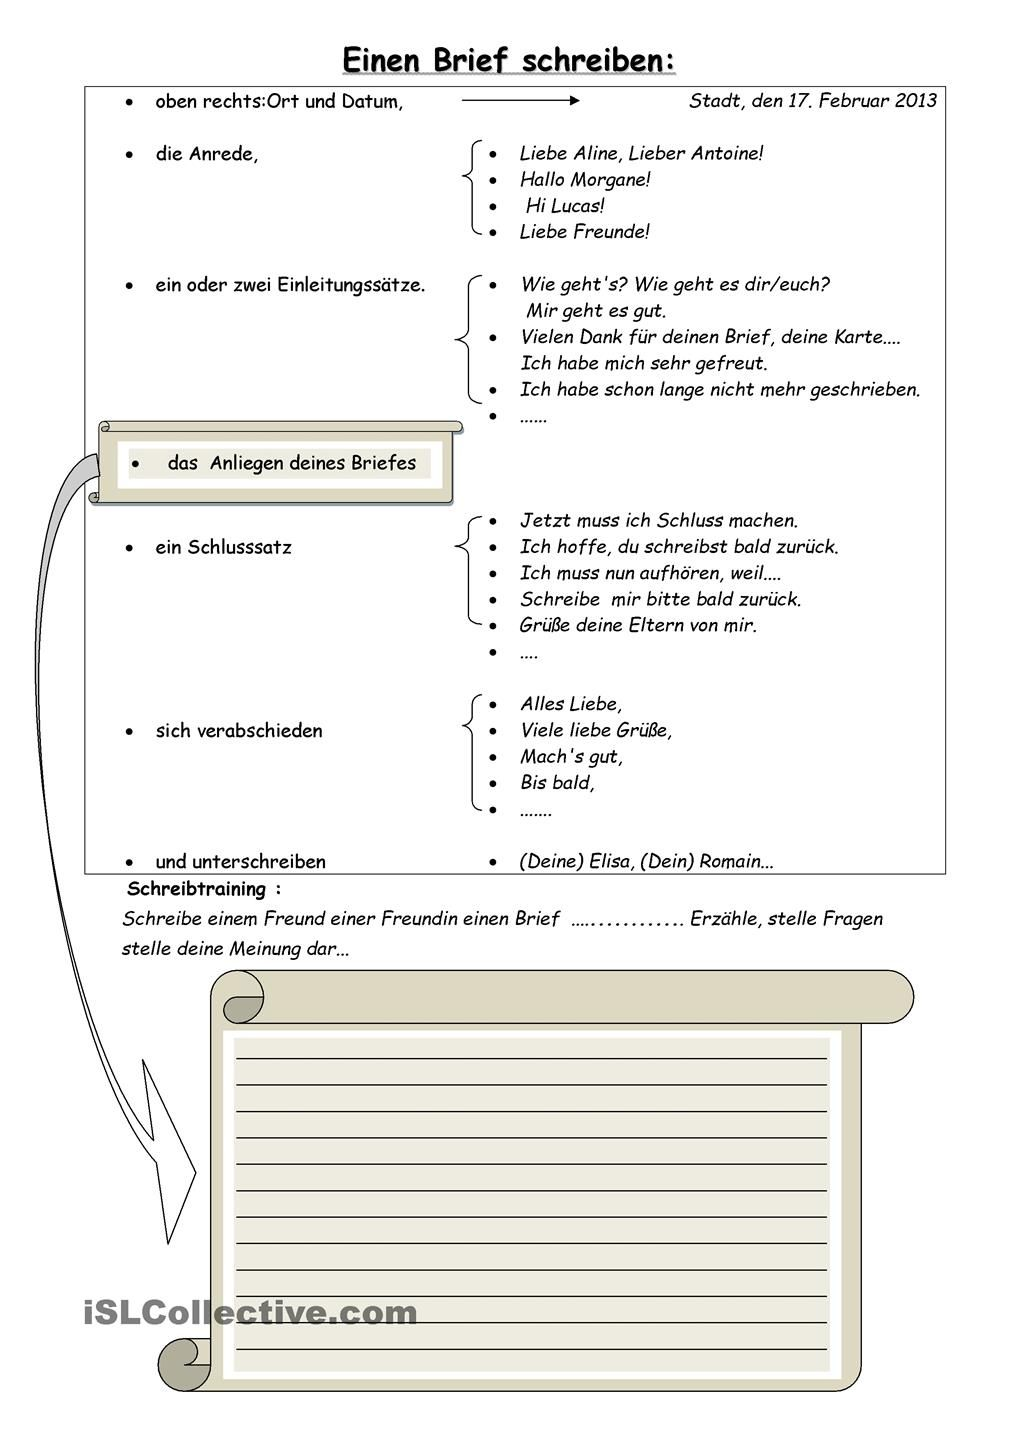 Einen Brief Schreiben German Learn German German Grammar